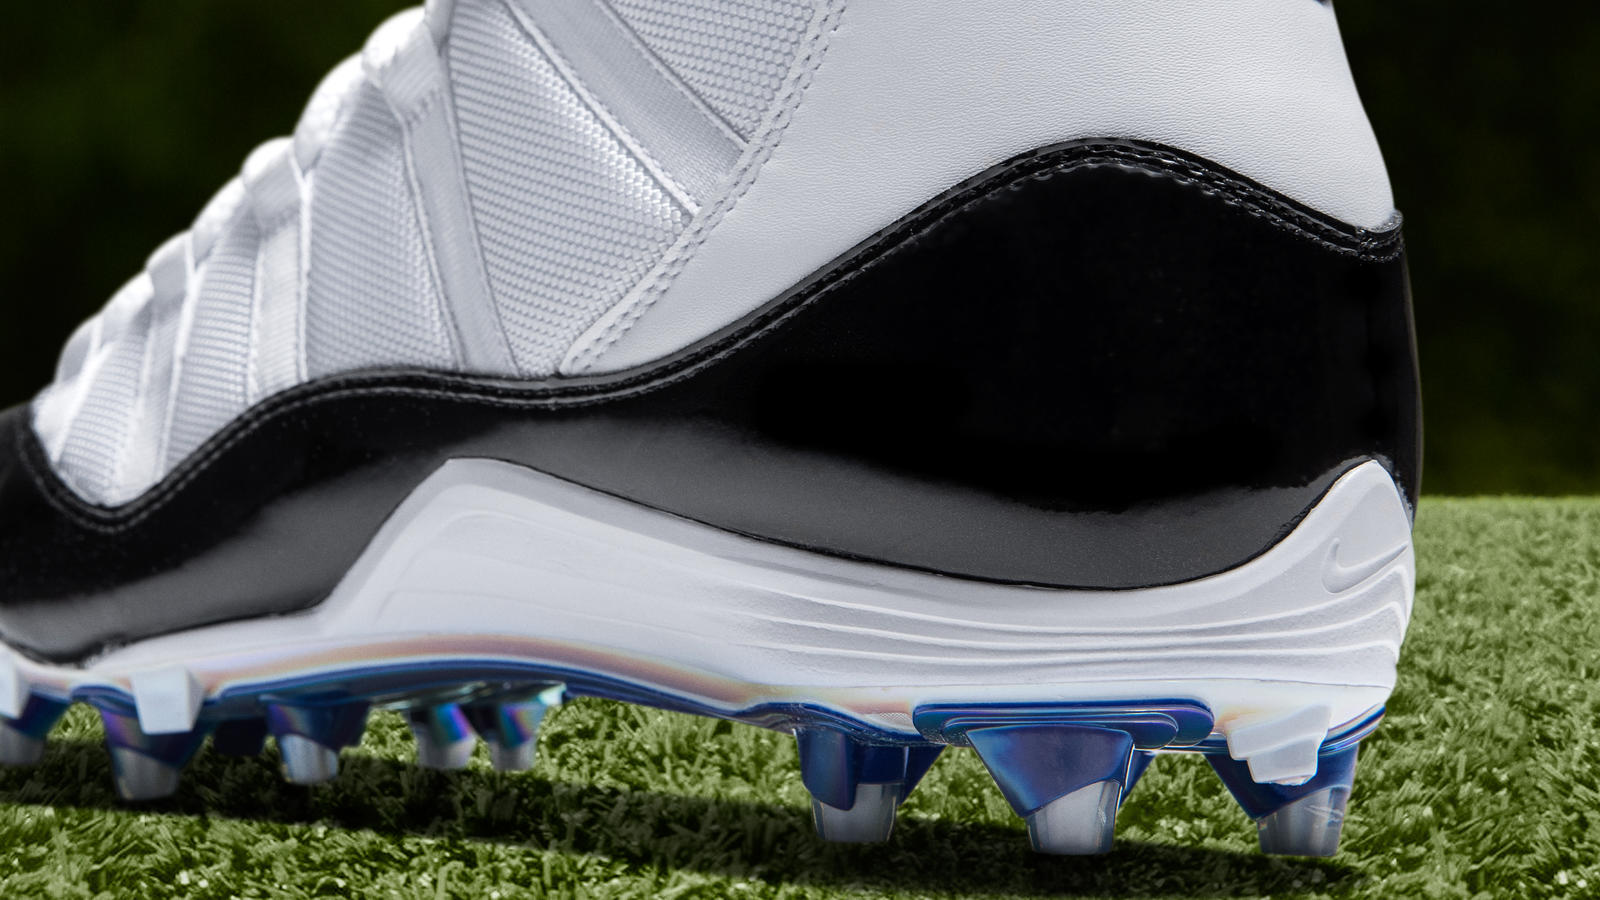 bed8d3cc2d2 Jordan XI Football Cleat - Nike News